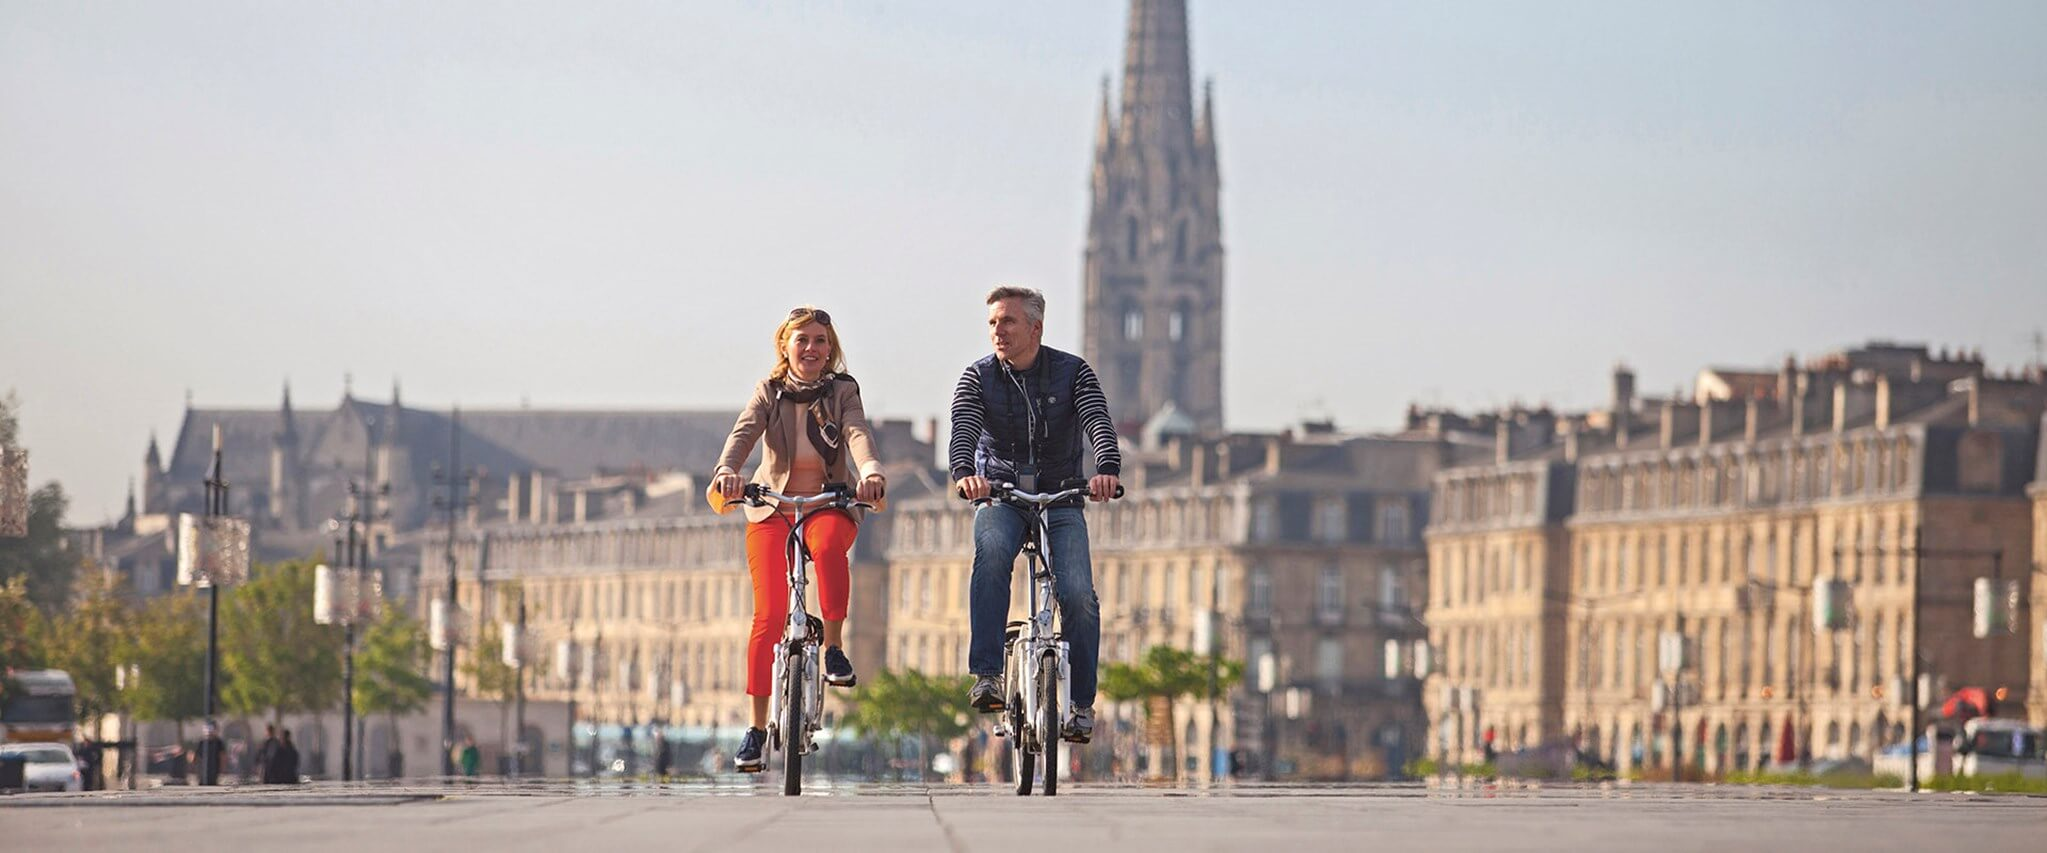 Tourist couple on vacation riding bicycles on the streets of Bordeaux, France